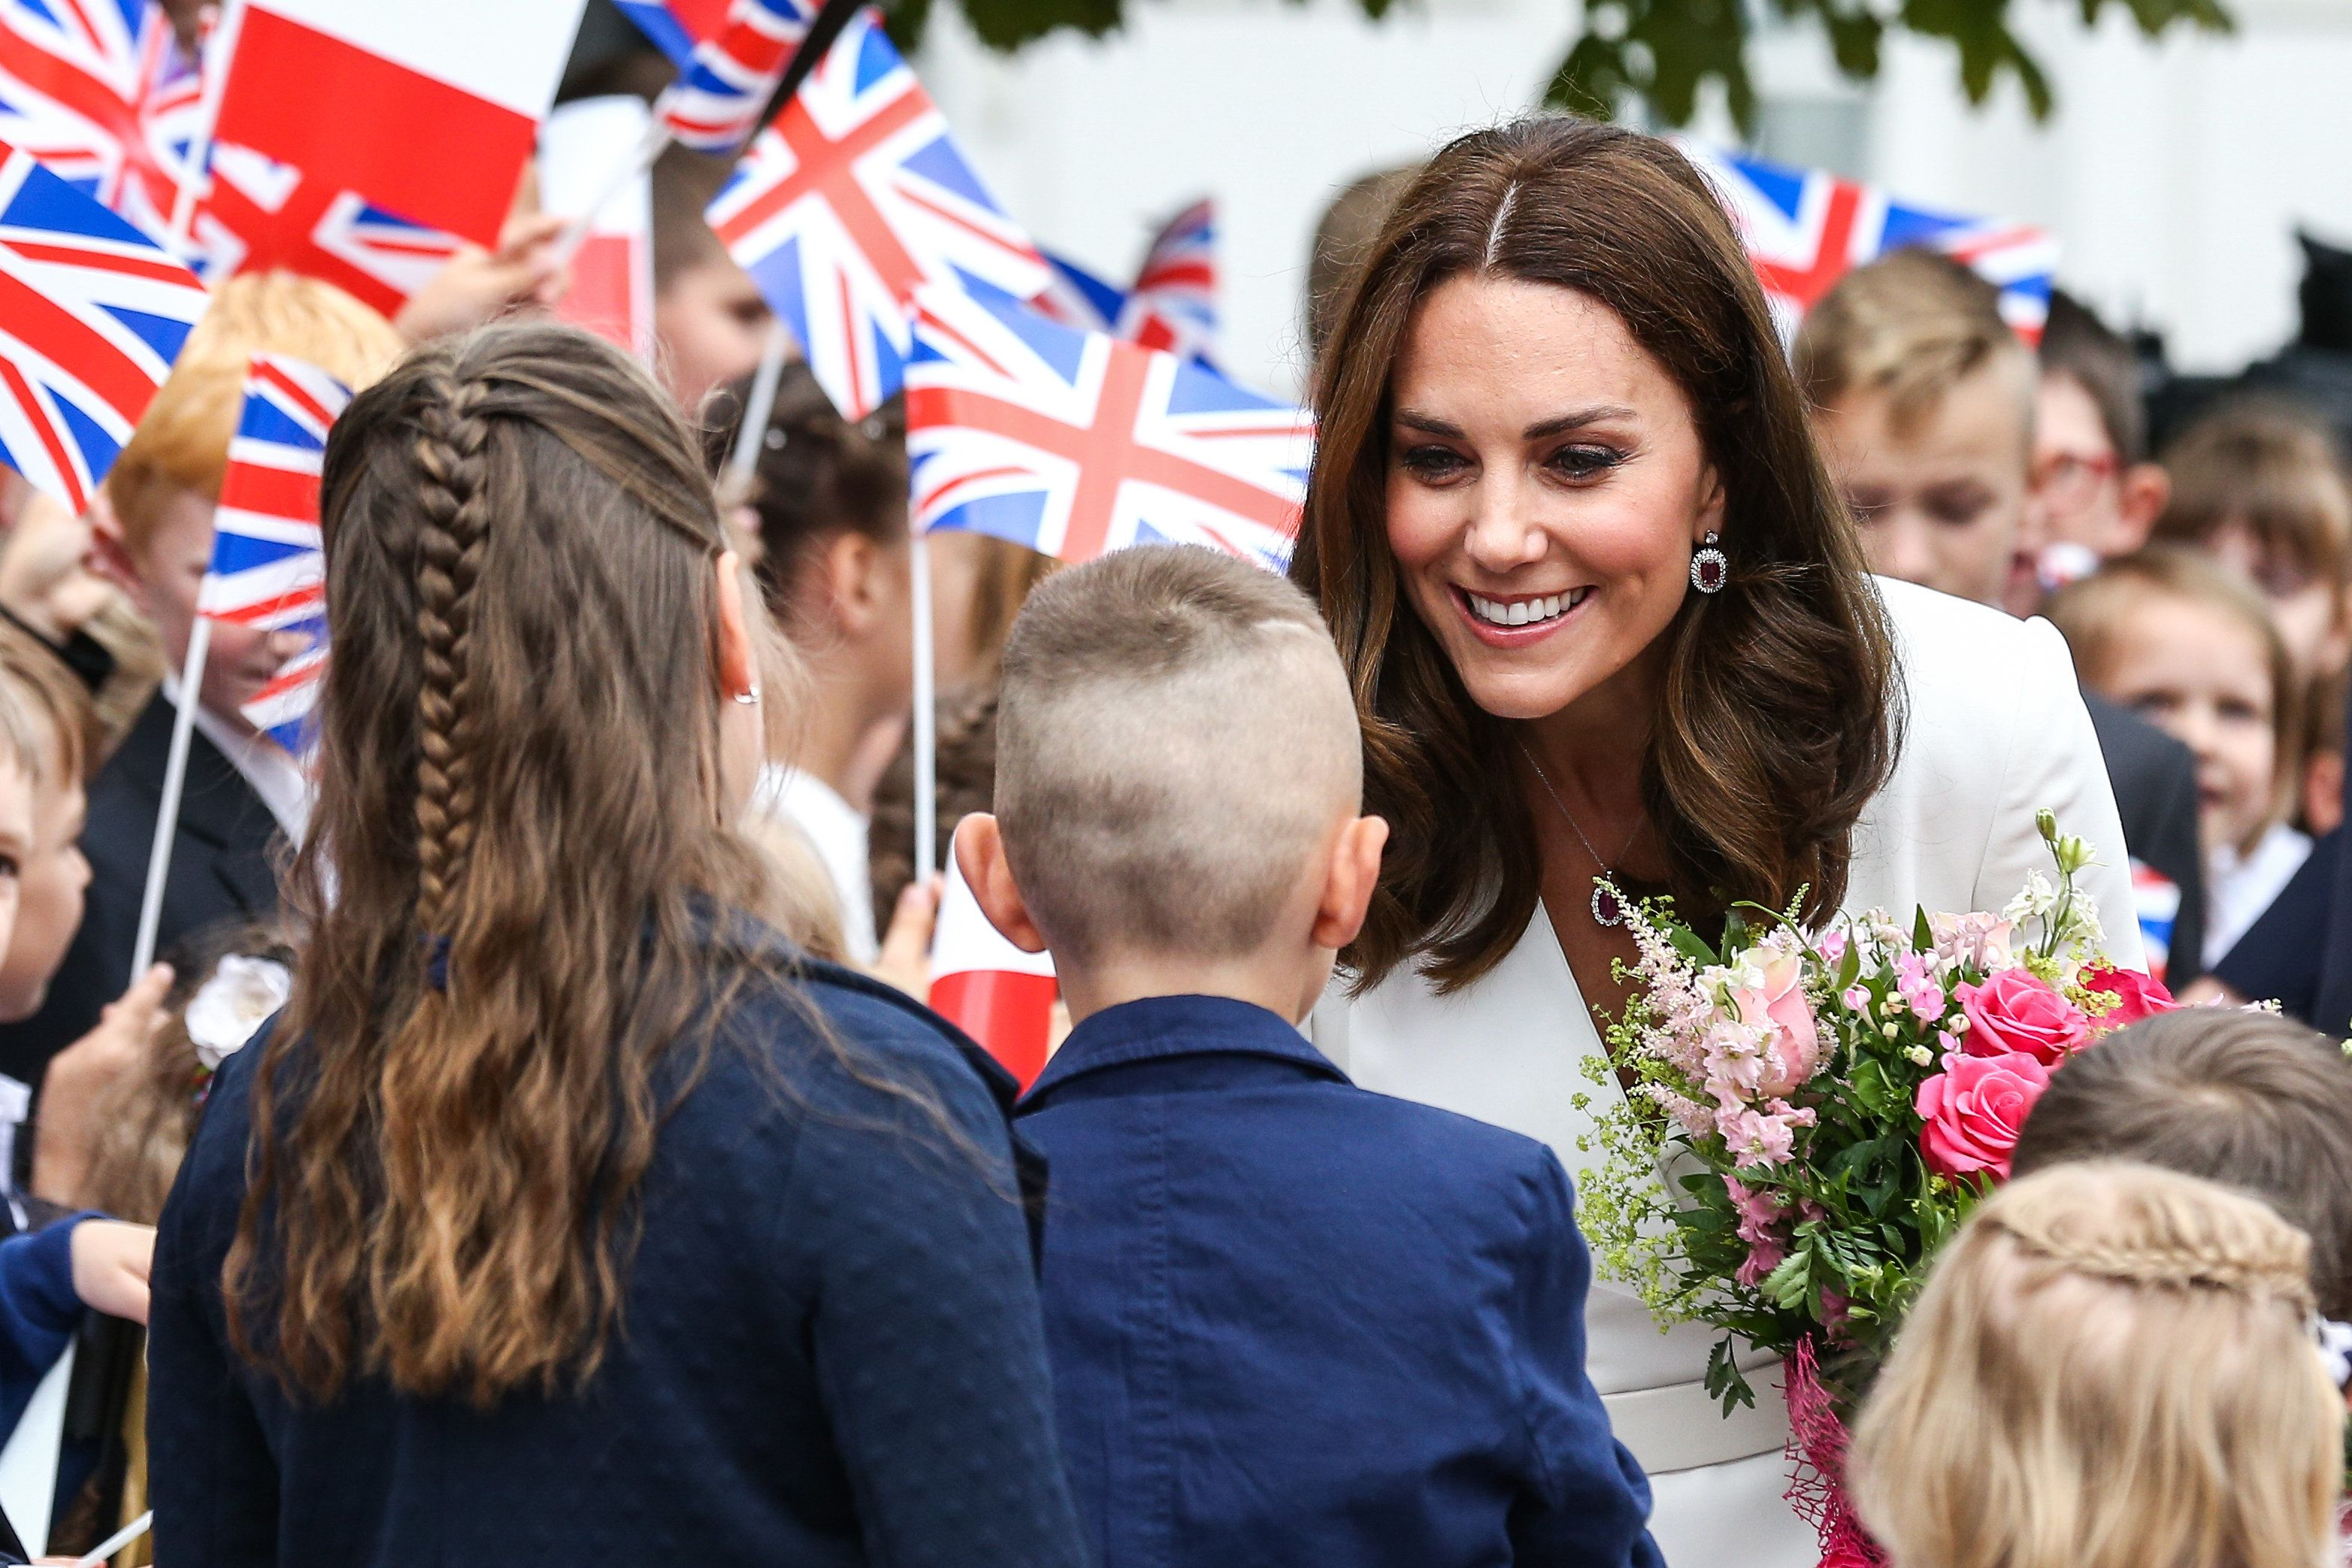 WARSAW, POLAND  JULY 17: (SOUTH AFRICA AND POLAND OUT) Their Royal Highnesses Prince William and Kate Middleton proceed to the Adam Mickiewicz Monument on July 17, 2017 in Warsaw, Poland. Prince William and Kate Middleton are visiting Warsaw with their two children, Princess Charlotte and Prince George. (Photo by Karol Serewis /Gallo Images Poland/Getty Images)